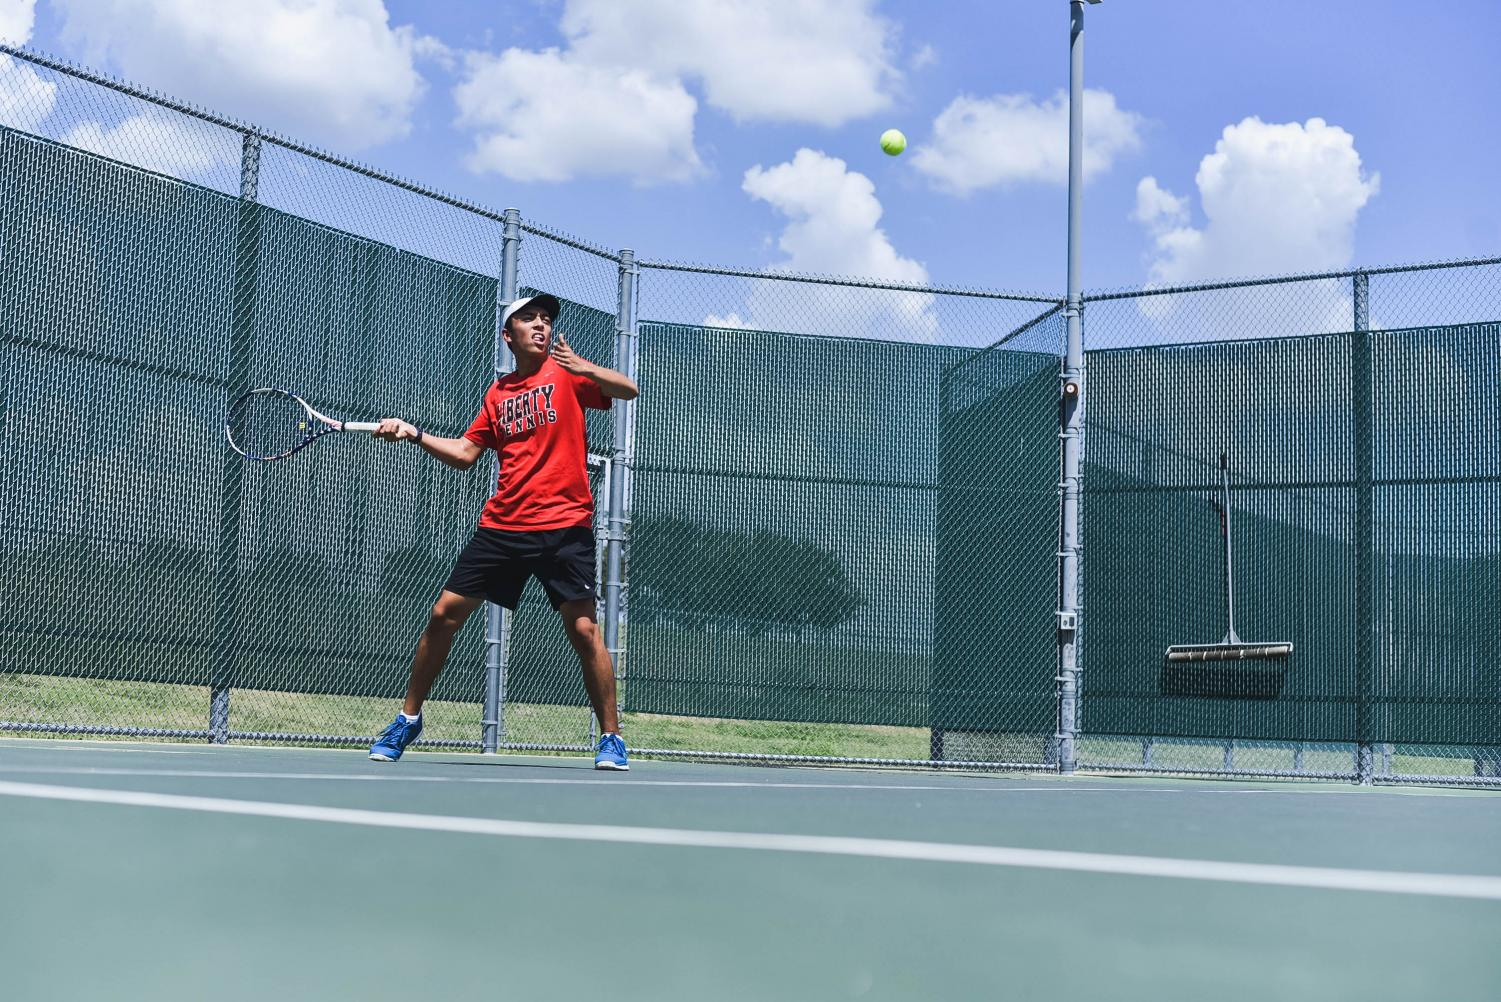 Readying himself to return the ball, senior Alex Lopez looks to hit a winning volley. After losing its last match, the Redhawks tennis team bounced back in the win column with Tuesday's 17-2 victory over Memorial High School.